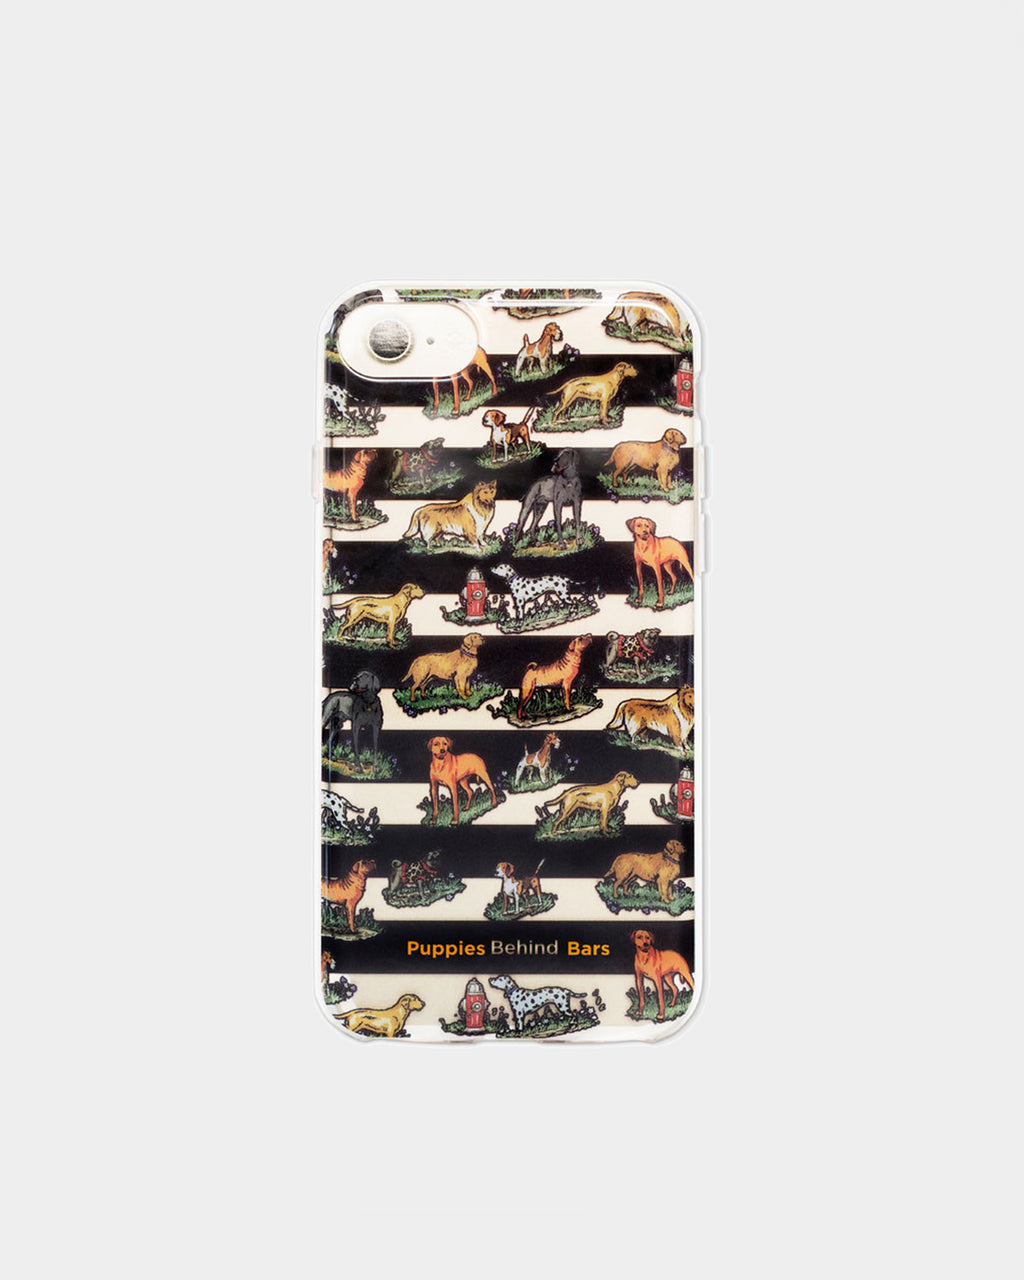 PBPIPHO - PUPPIES BEHIND BARS iPHONE 7 CASE - accessories - fashion tech - In a one of a kind print created for Puppies Behind Bars, this case is suited for the iPhone 7. All proceeds will be donated to Puppies Behind Bars, a non-profit that trains inmates to raise service dogs for wounded war veterans and explosive detection canines for law enforcement.